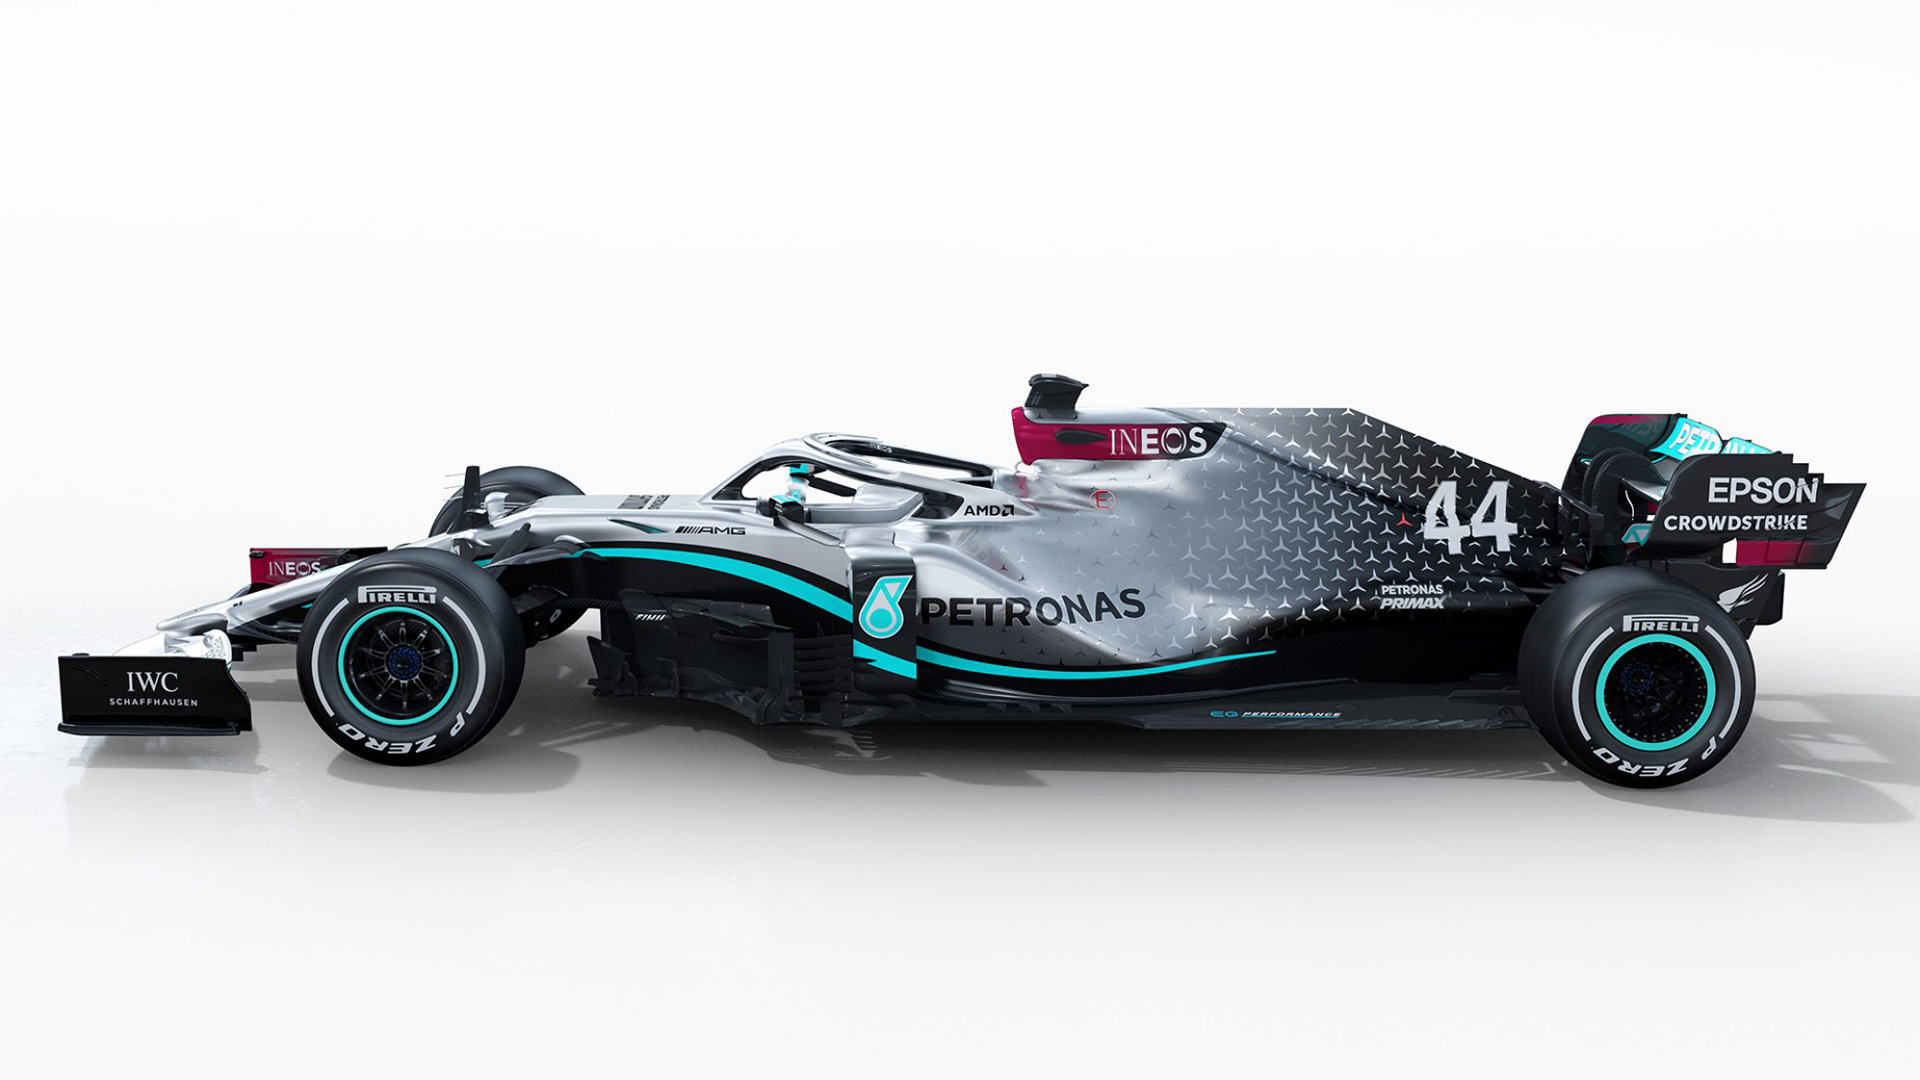 Mercedes Amg Reveals Its Race Car For The 2020 F1 Season Images, Photos, Reviews